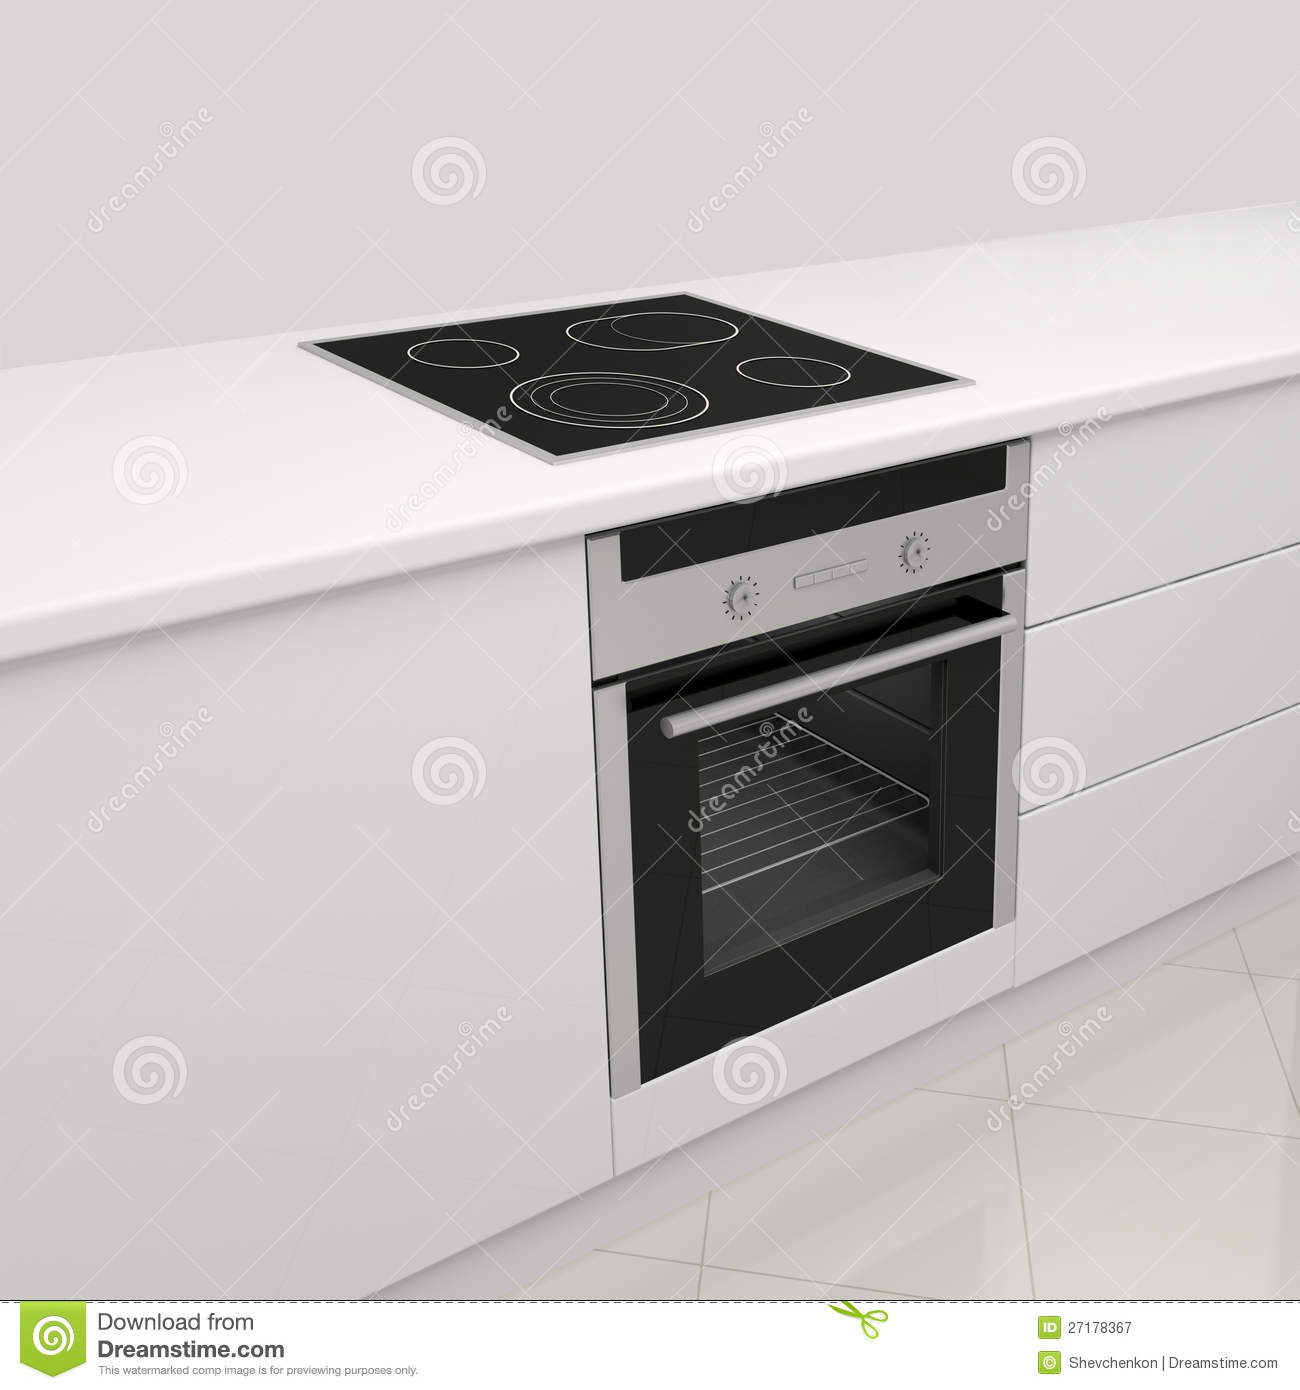 stove and oven. royalty-free stock photo. download electric stove and oven. oven